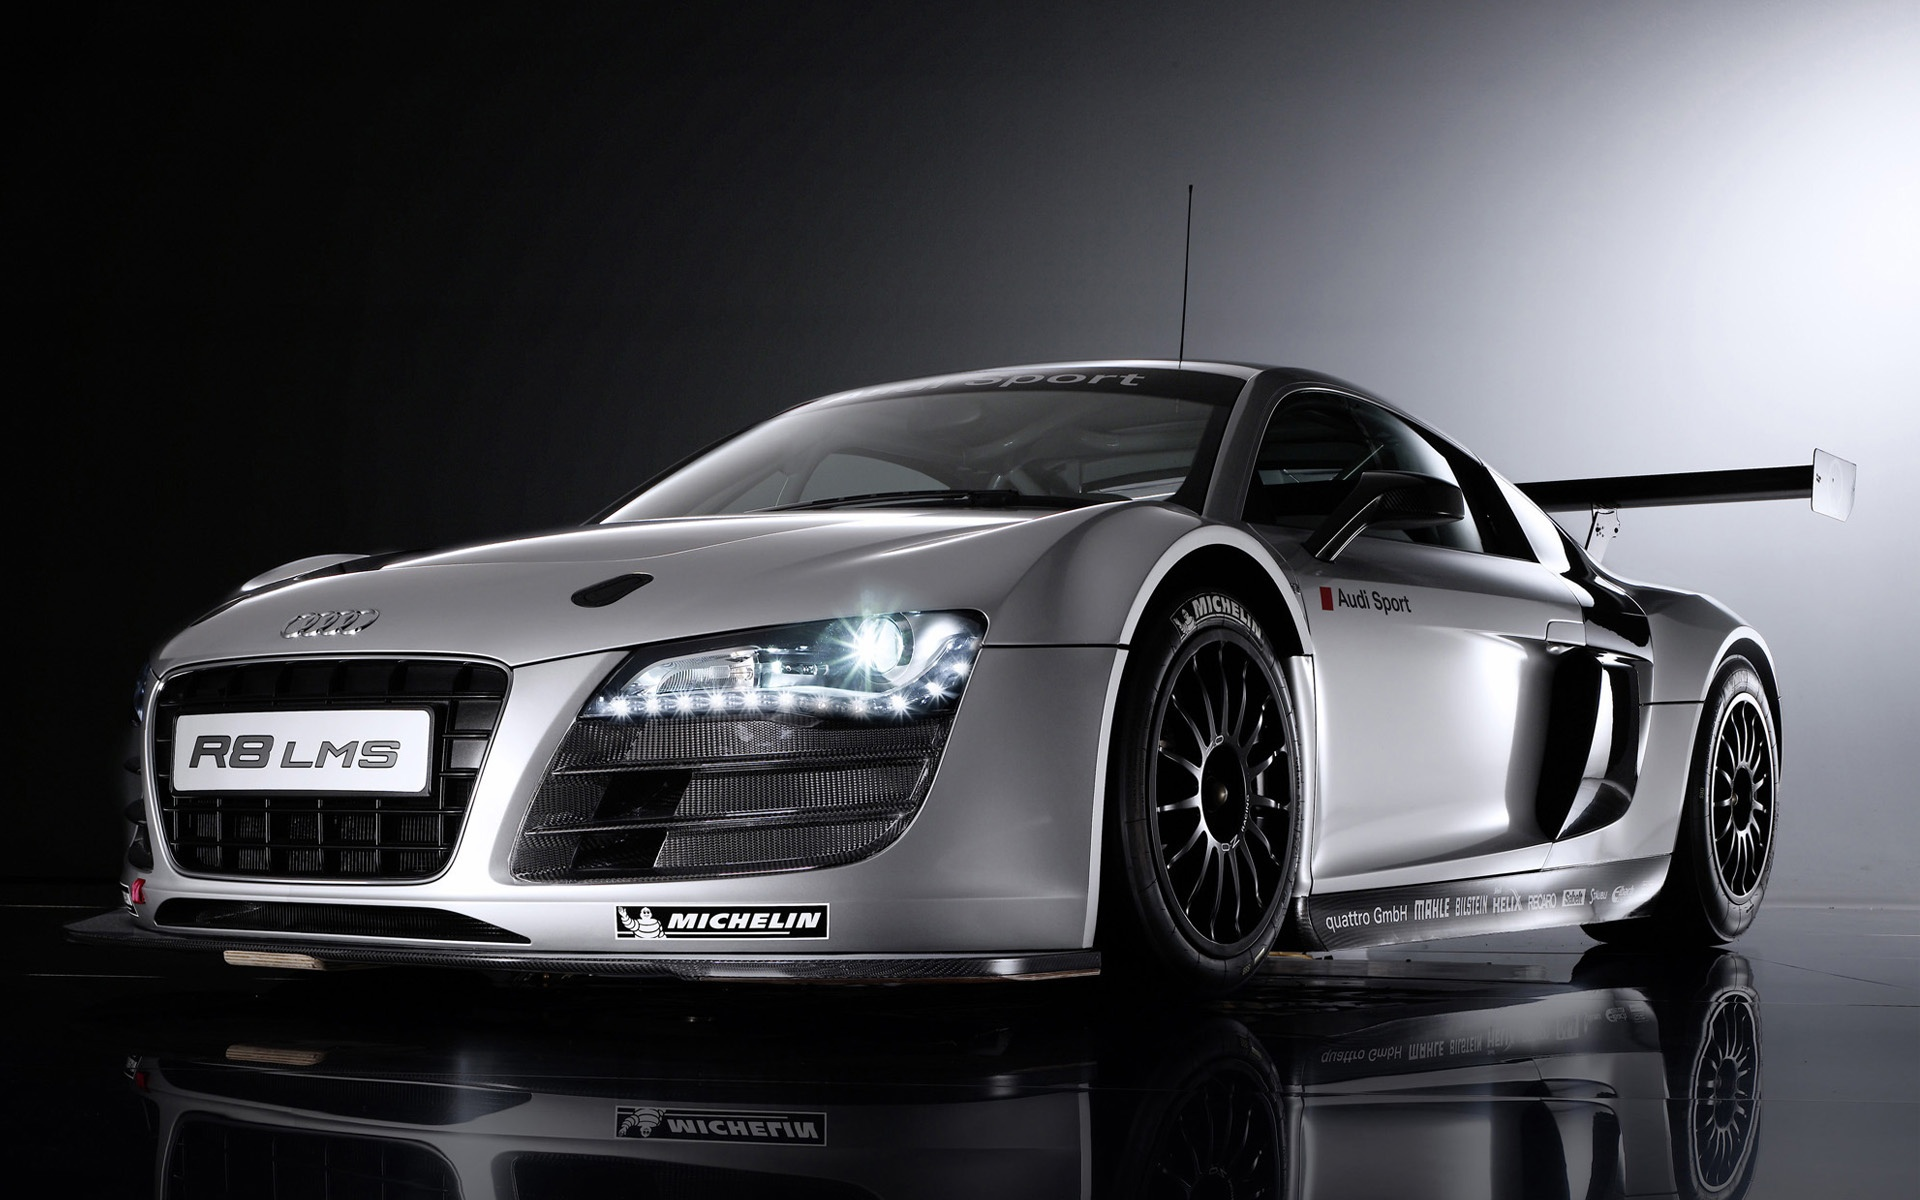 Audi R8 Lms 2010 Wallpapers In Jpg Format For Free Download